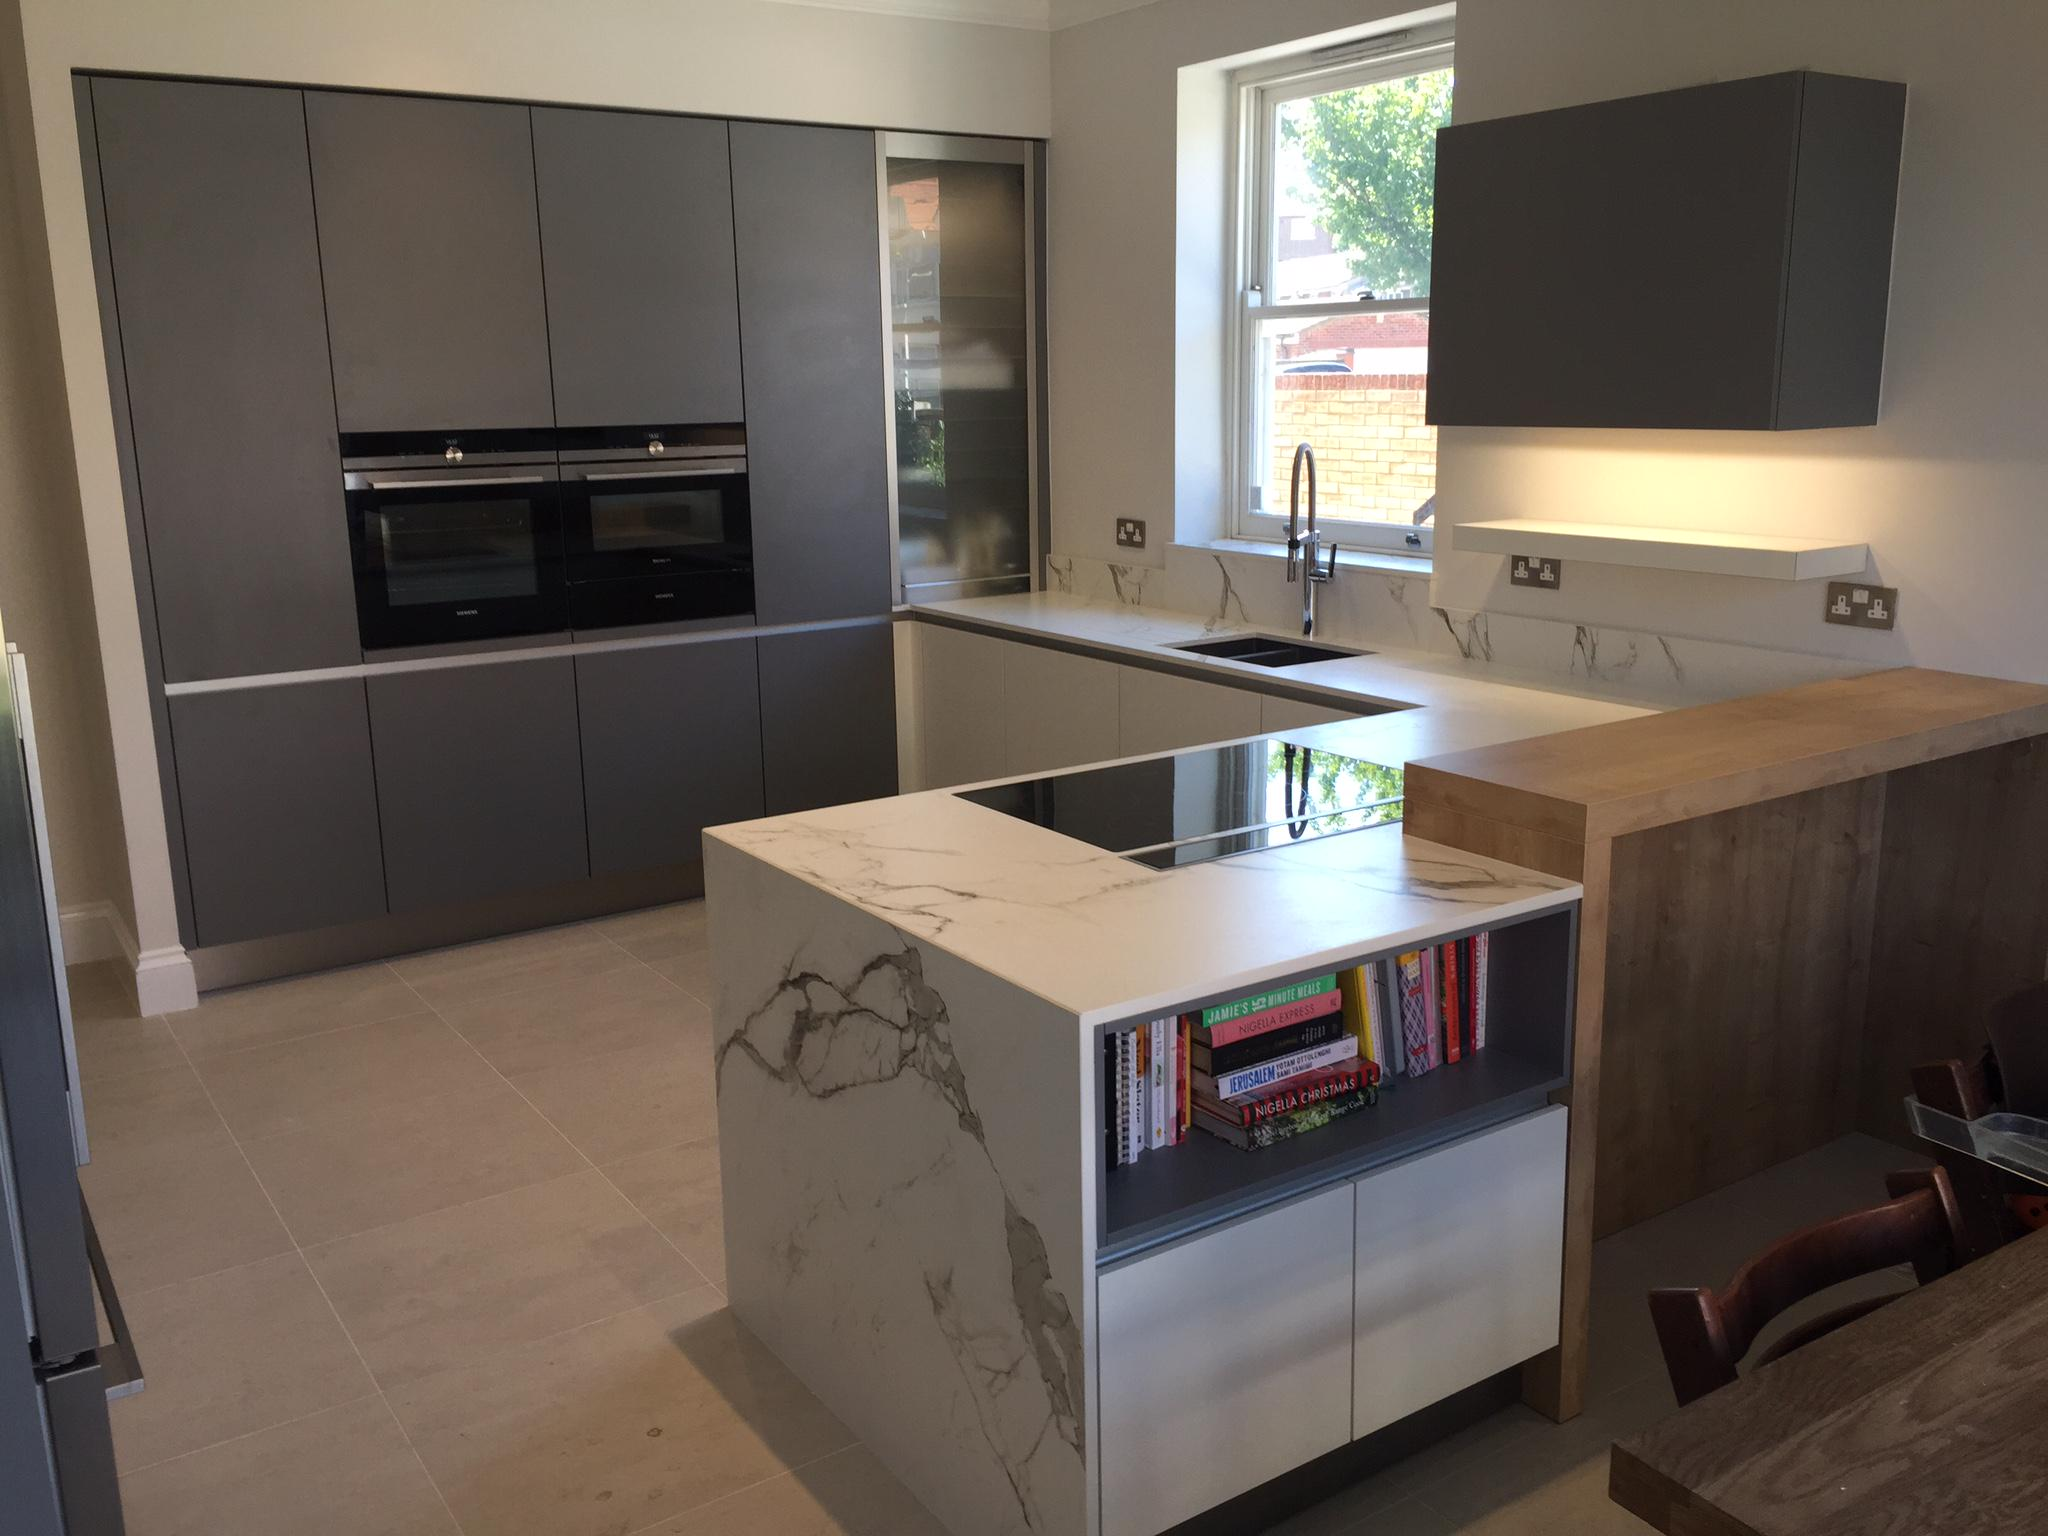 Kube kitchens on twitter beautiful kitchen designed by for Kitchen design upminster